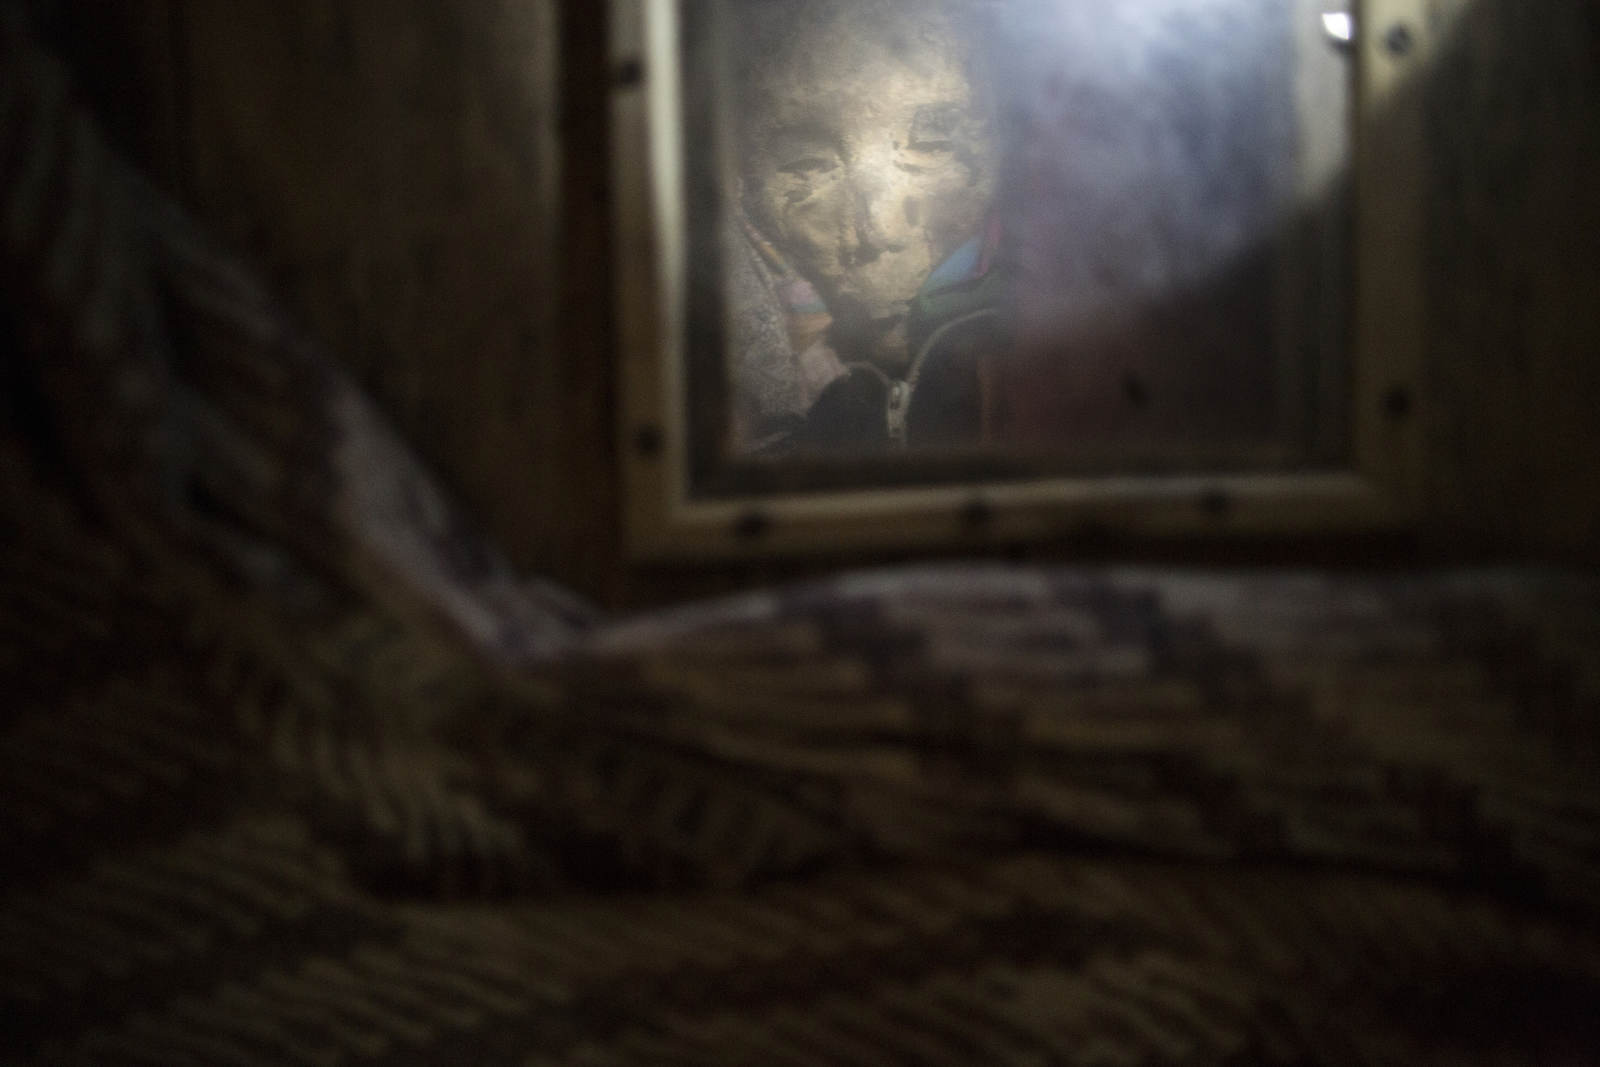 Maria Deten, who died in May 2011, in a coffin with a opaque window, in her home in Toraja, Indonesia. Her family will keep her body around as they save money for an elaborate funeral procession. This also gives relatives time to say their goodbyes.